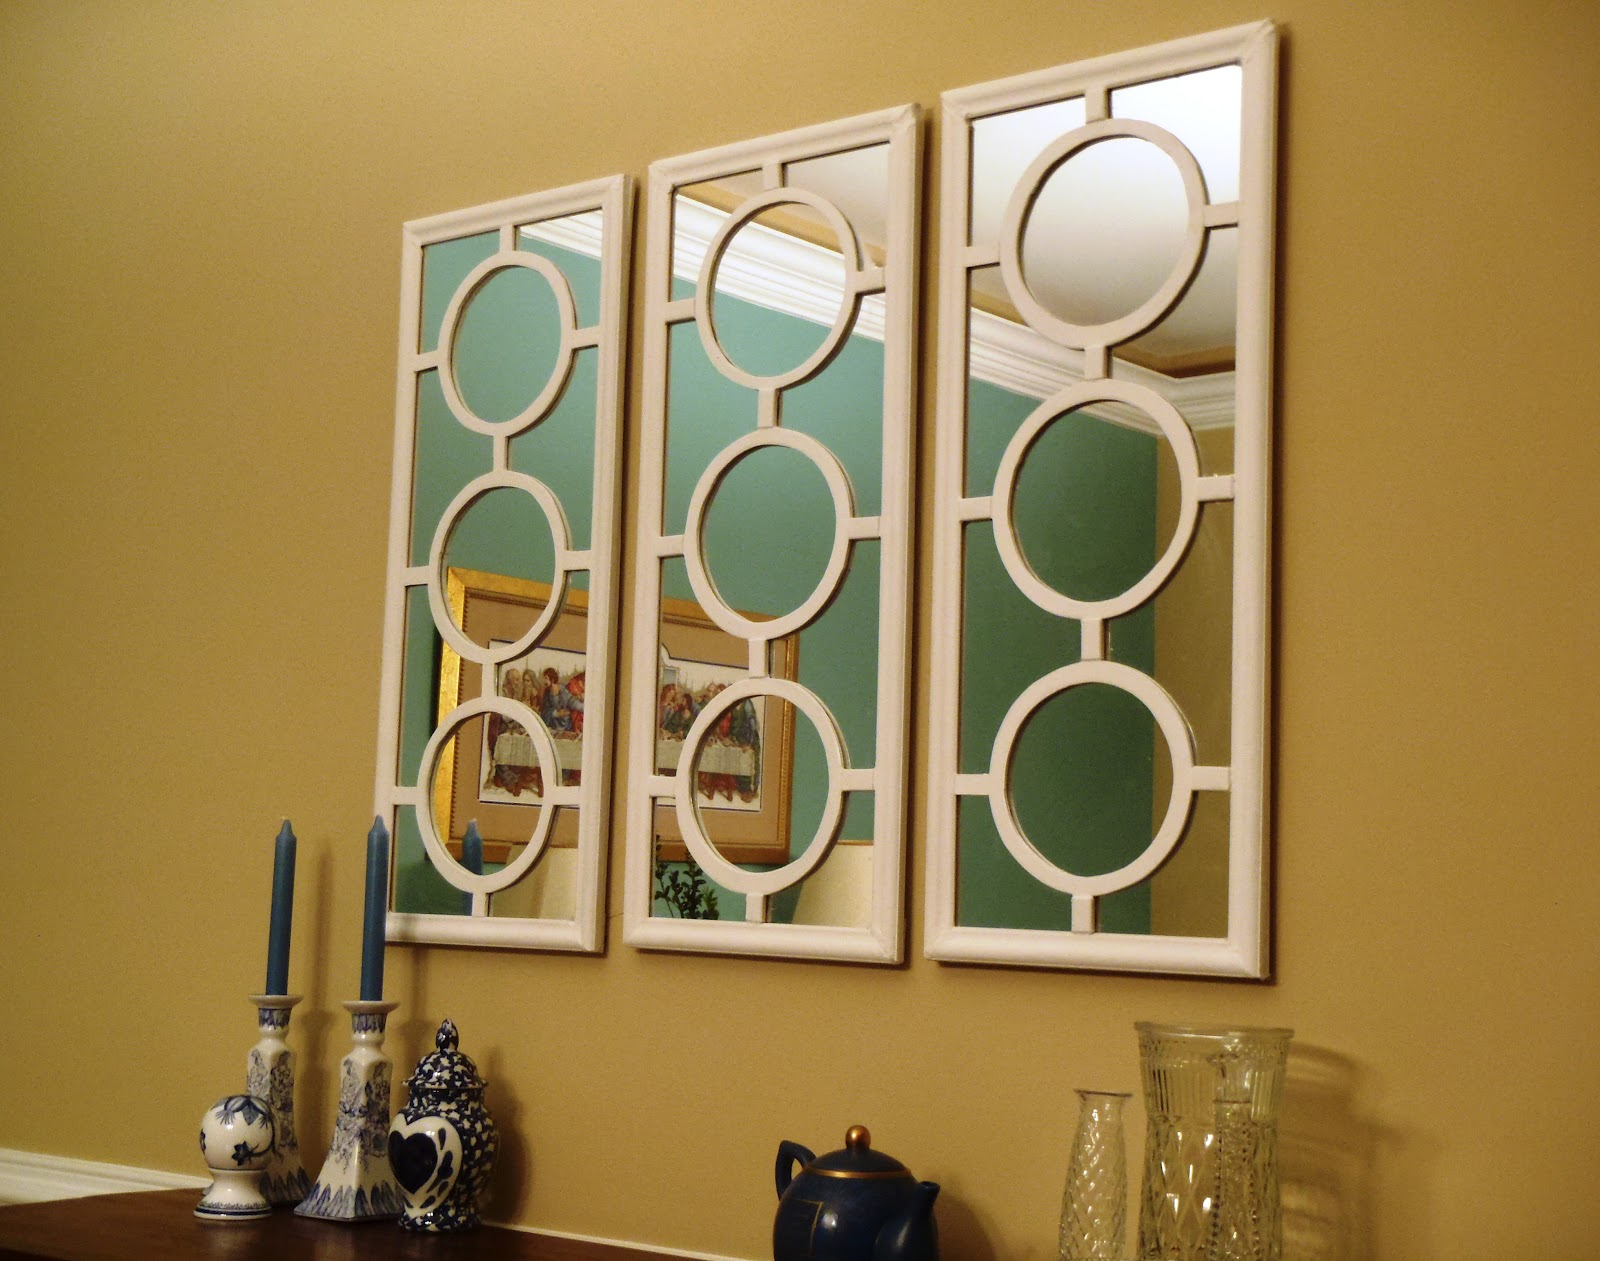 Lazy liz on less dining wall mirror decor for Espejos decorativos modernos